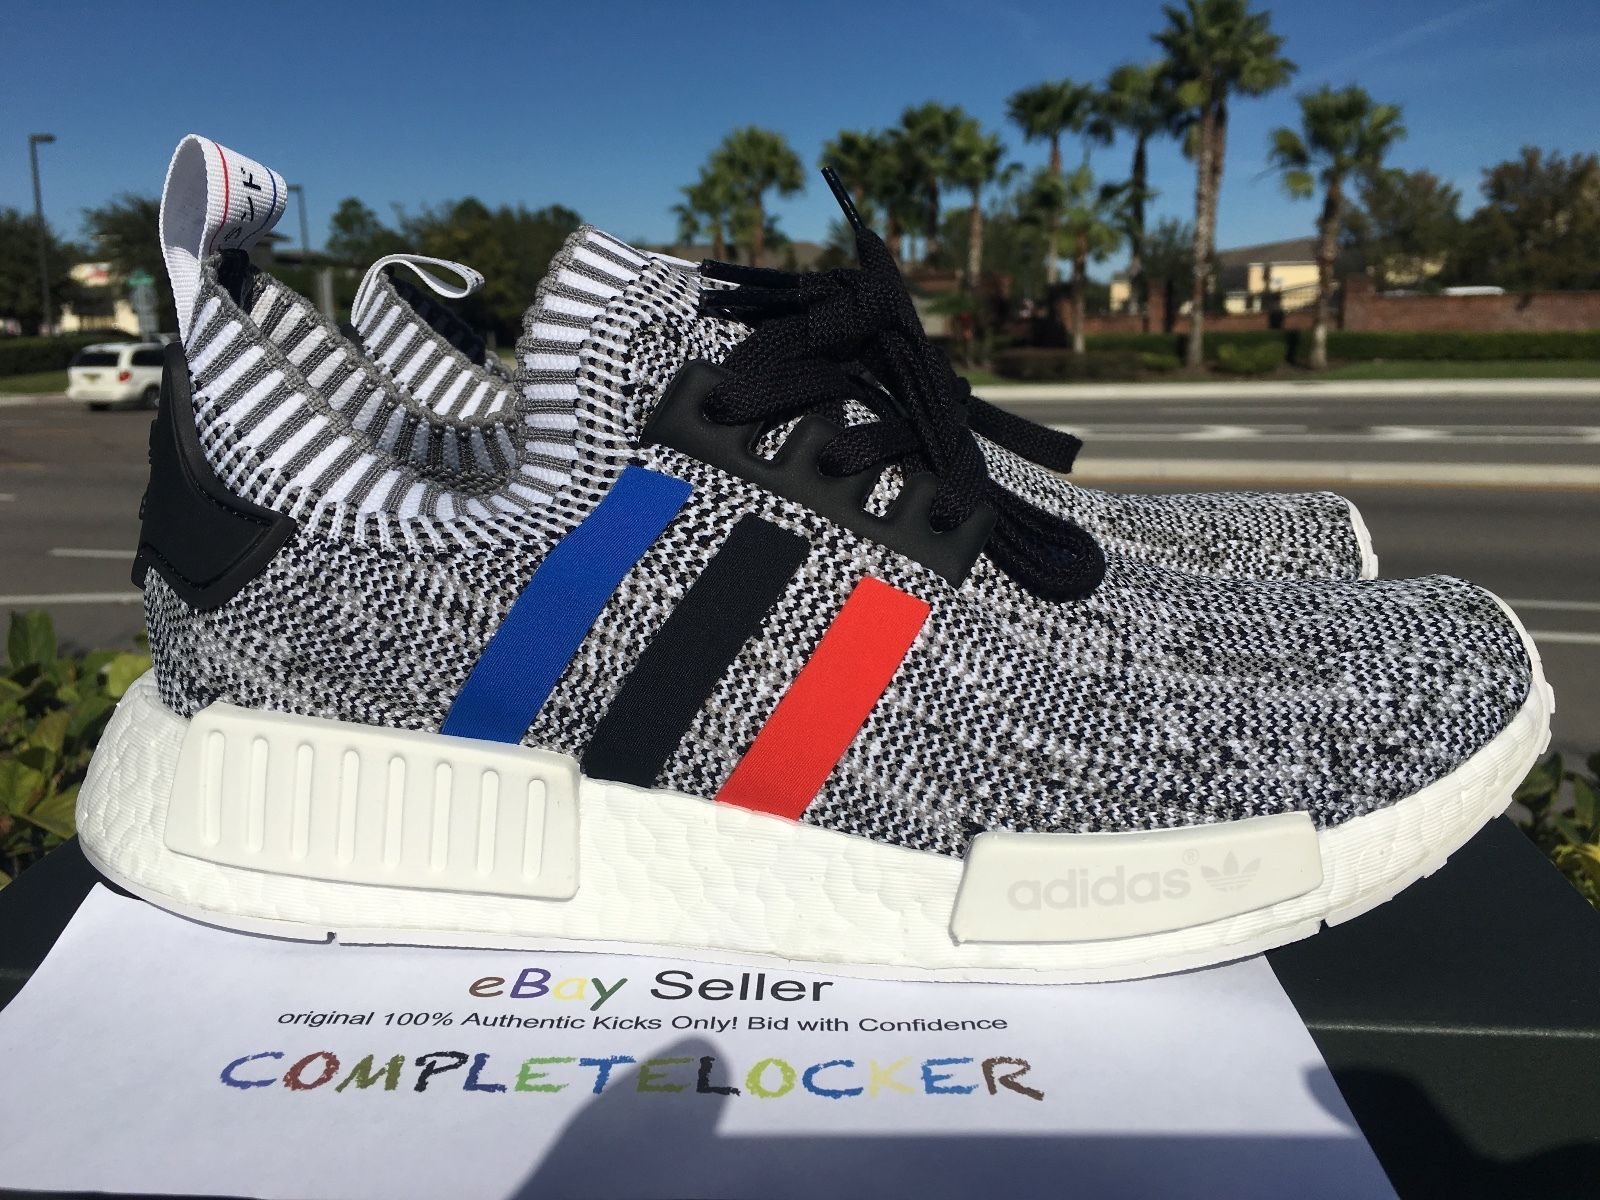 a9d972545 Adidas NMD R1 PK Primeknit BB2888 White Tri Color Mens Running Shoes US SZ 9